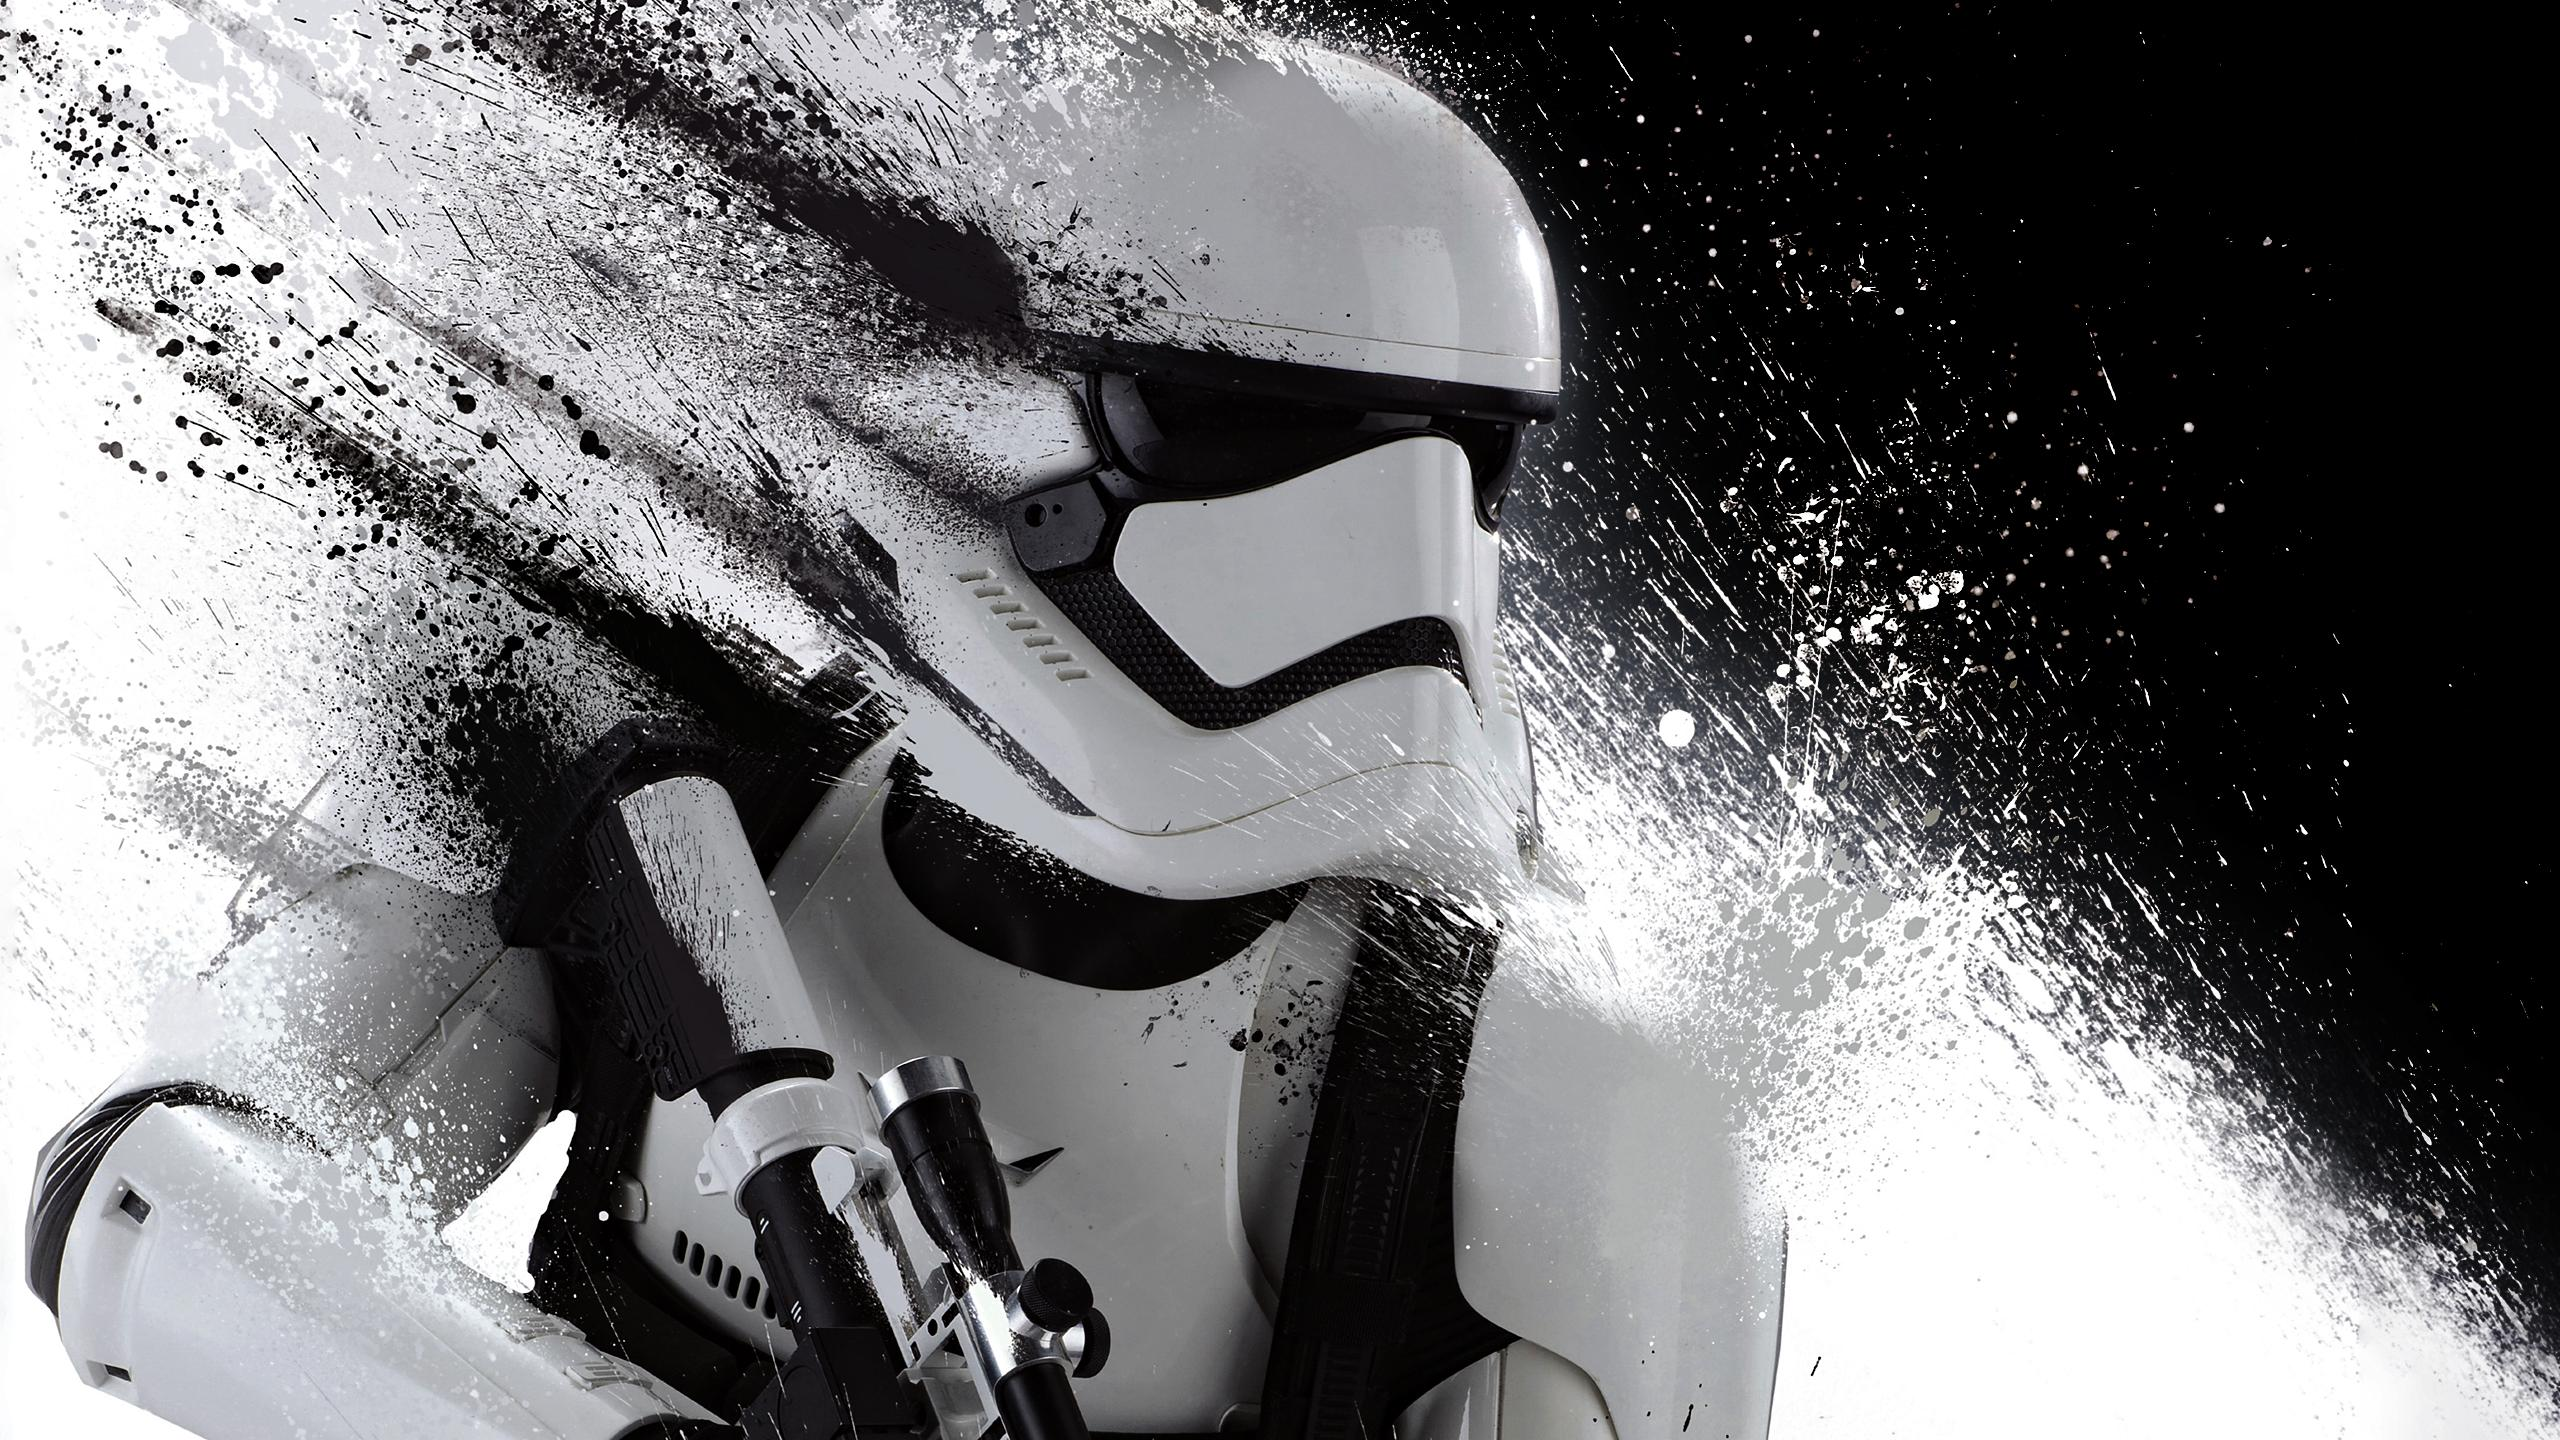 Star Wars Wallpaper 2560x1440